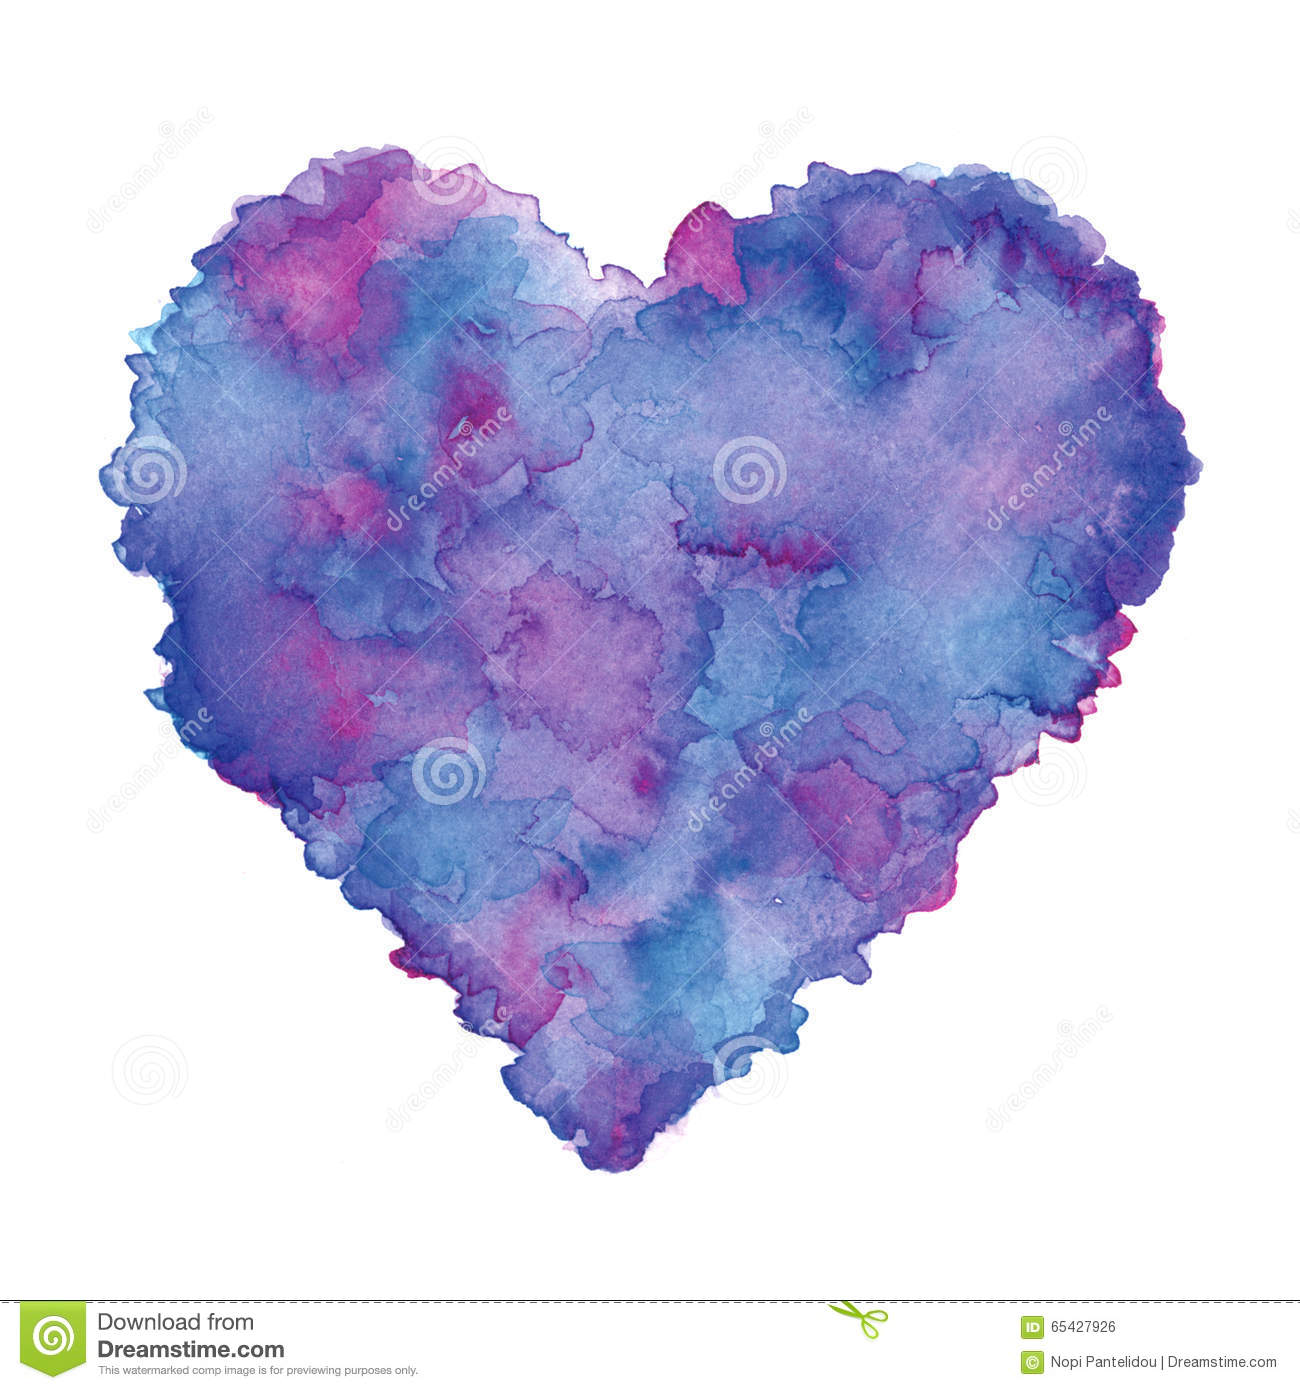 Clip Art Purple Heart Clip Art watercolor painted purple heart clip art element for your designs designs